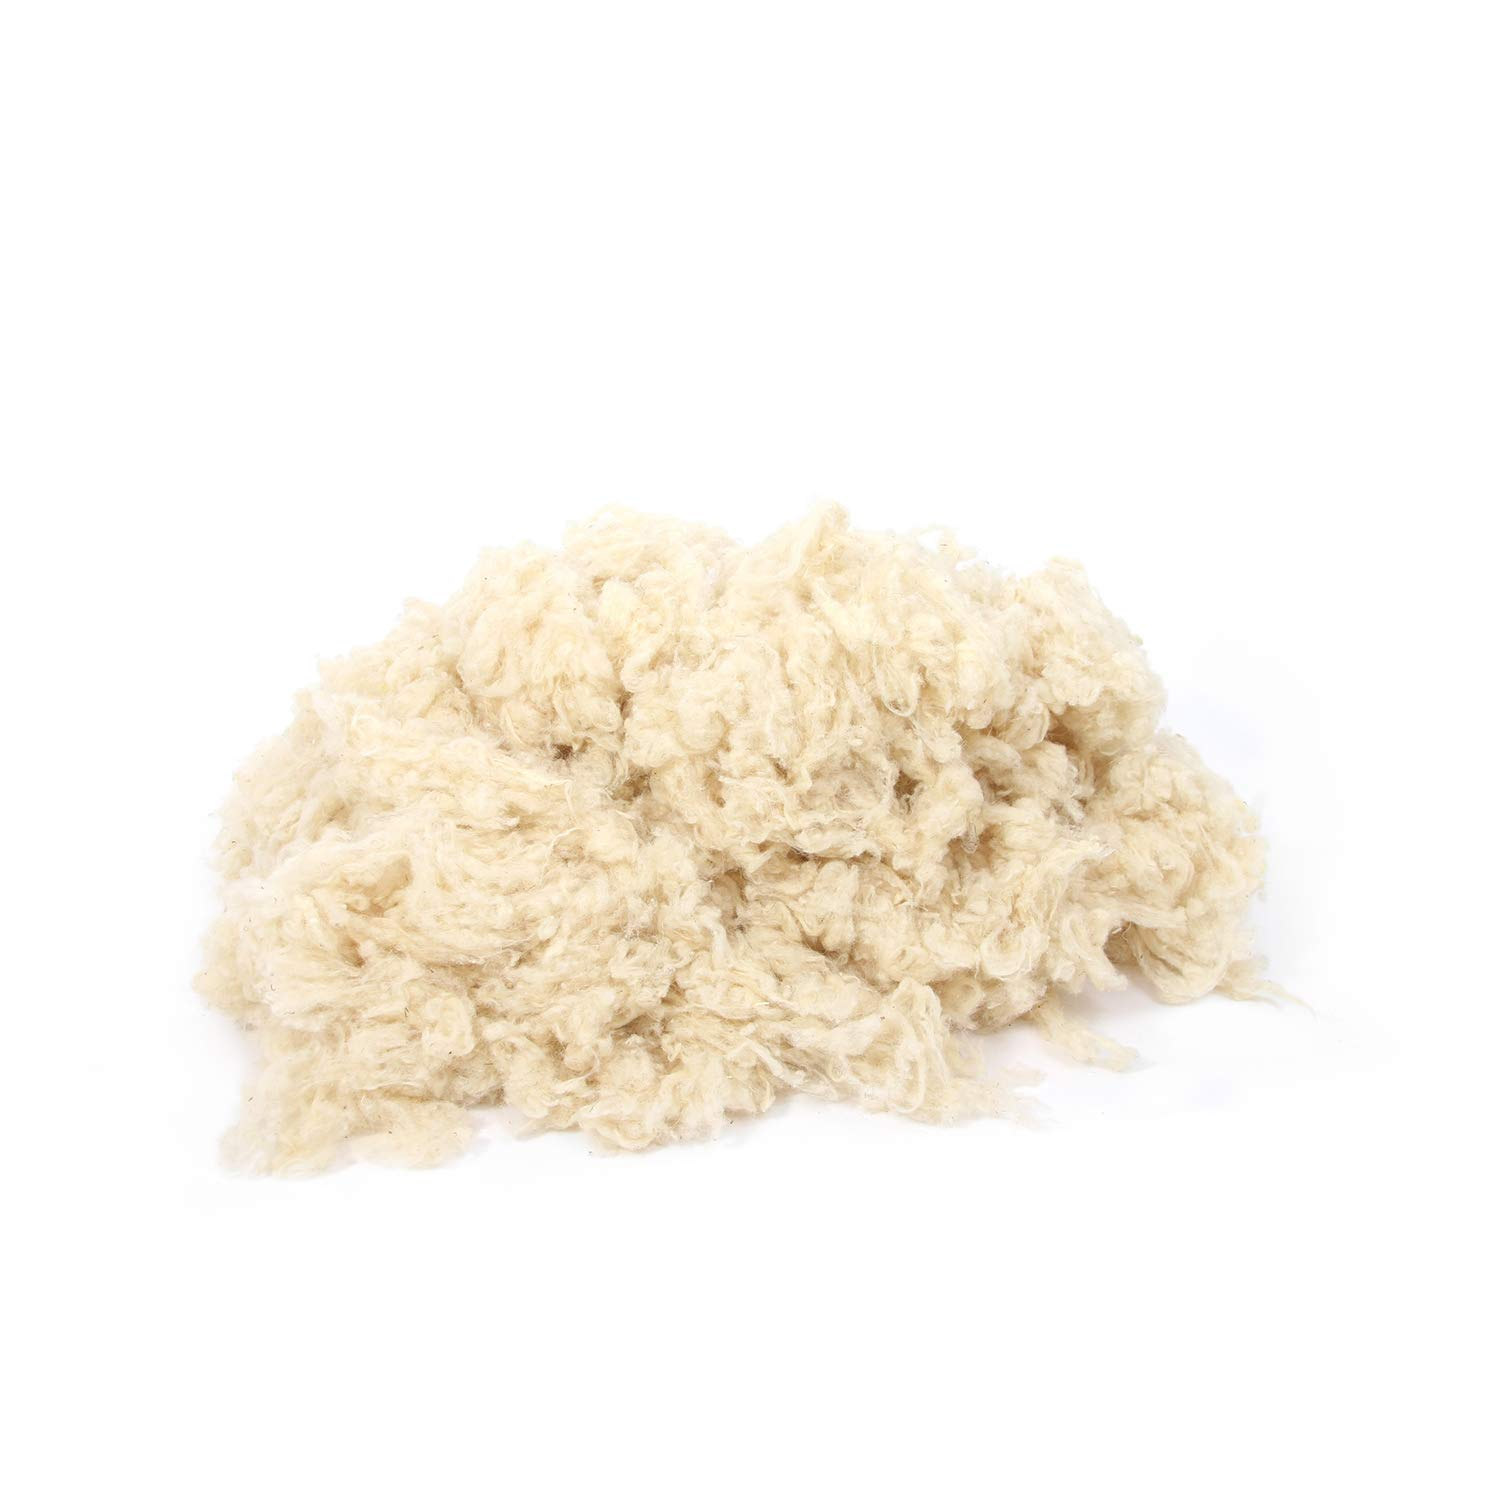 100% Natural Wool/Scoured & Washed/Oeko-TEX Certified (6 pounds (2.7 kg))